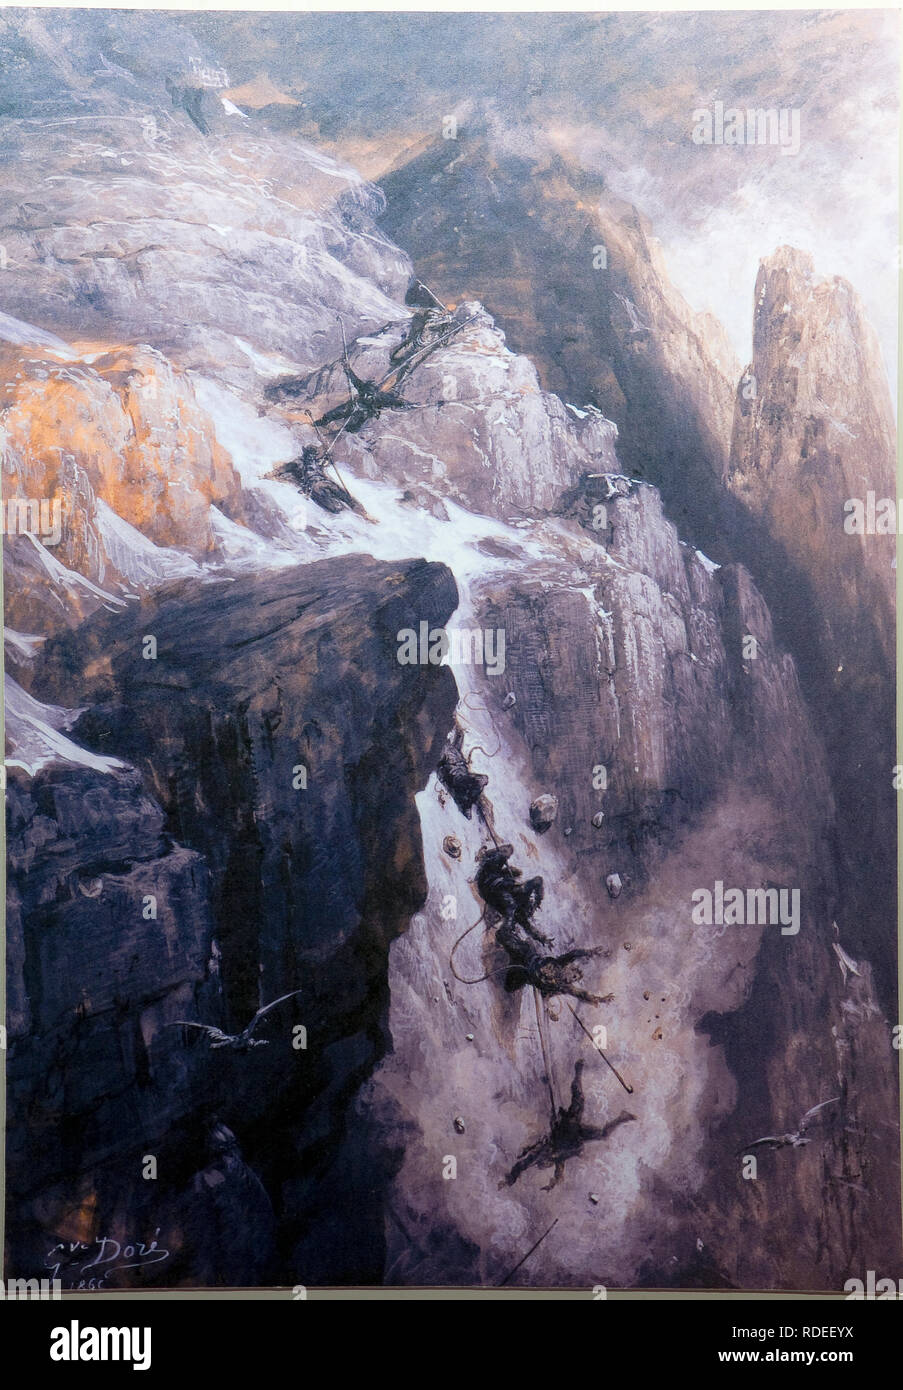 Italy Valle D'Aosta Bard The Fort - Now Museum -the museum of the Alps the city Discovers to the mountain Conquest of the fallen Cervino rock climbers Tragedy of the 14 July 1865 - Stock Image